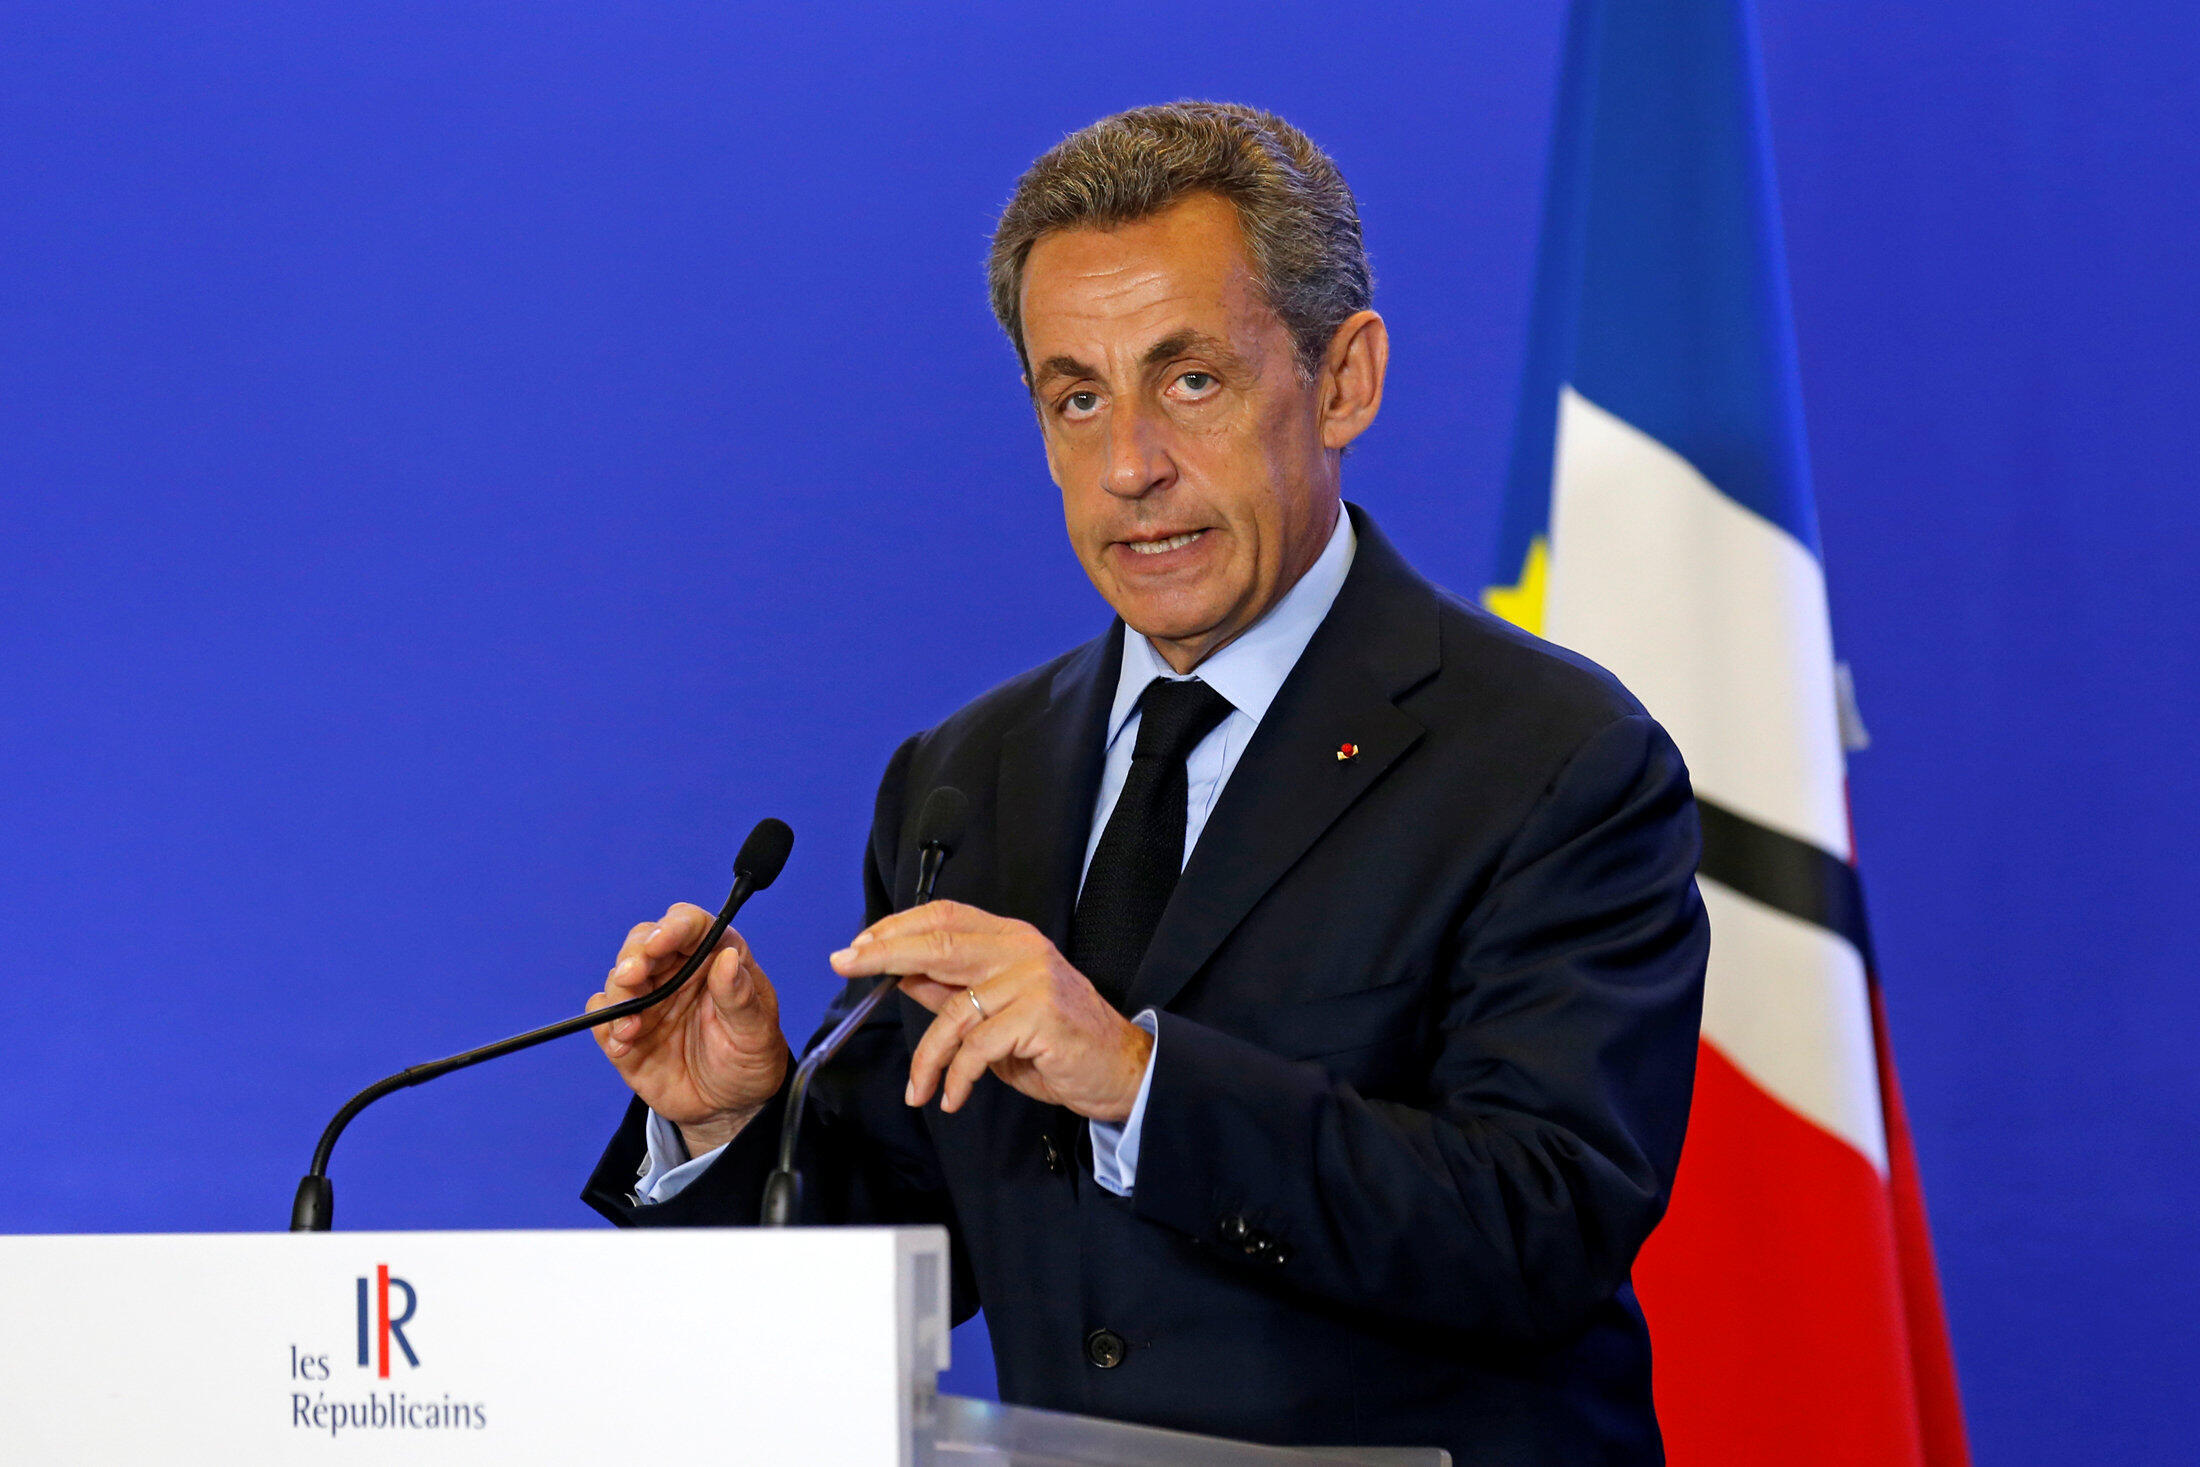 Former French president Nicolas Sarkozy announced he will seek party nomination for the 2017 presidential election.